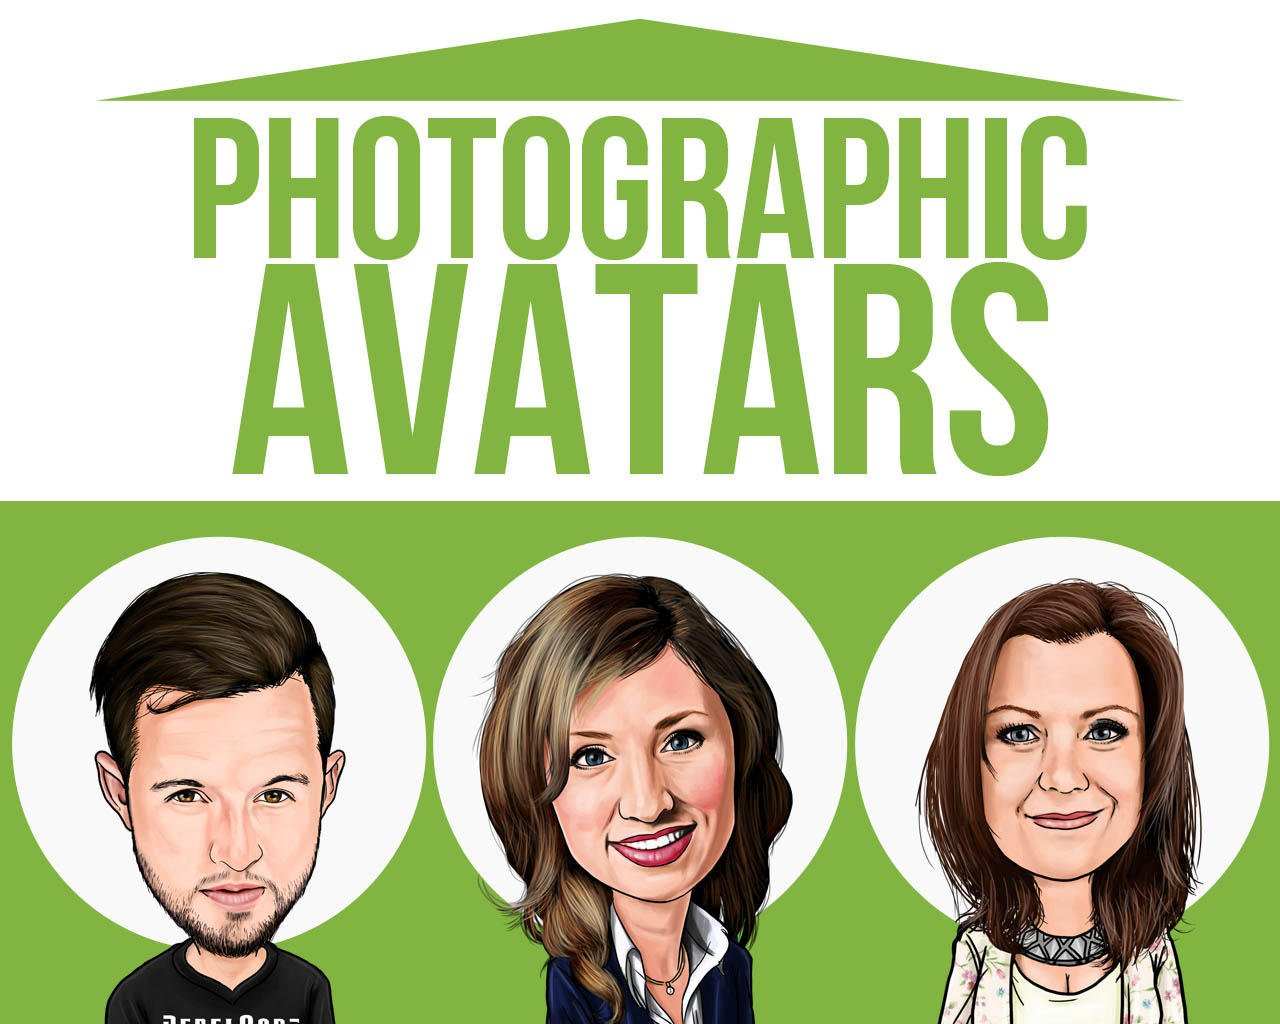 Photographic Cartoon/Caricature Avatars by r4pro - 99027